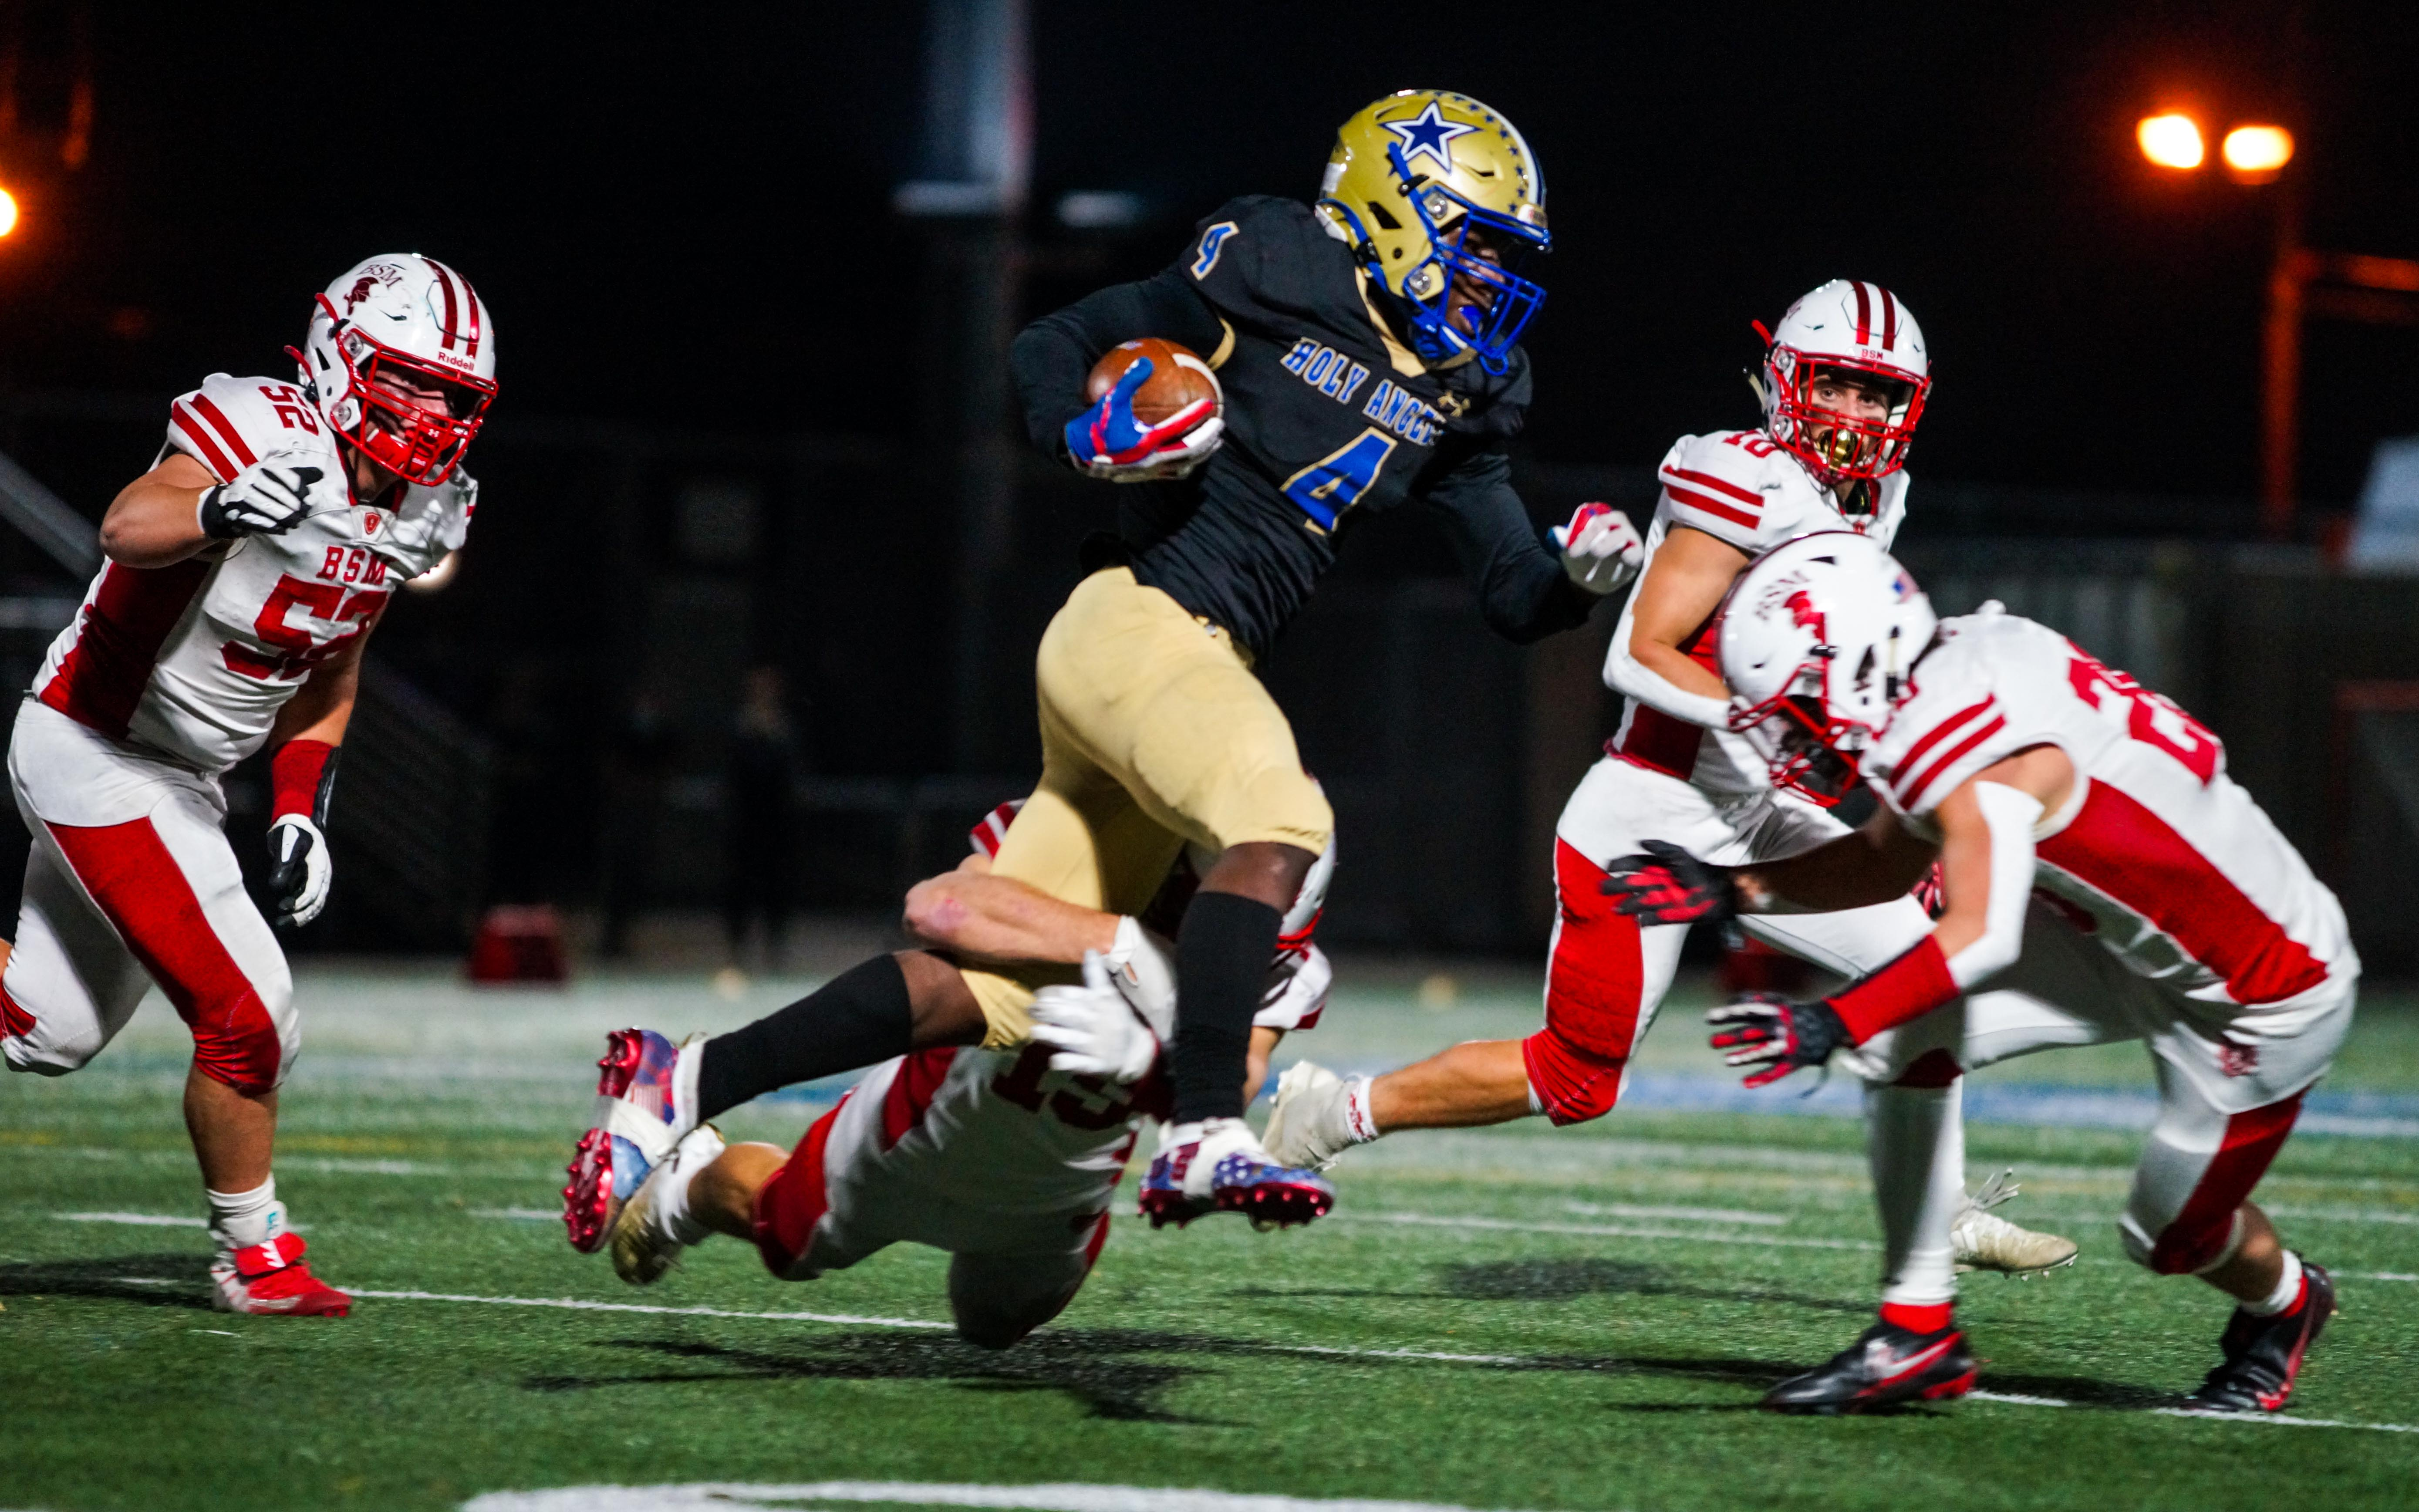 Holy Angels running back Emmett Johnson (4) had two rushing touchdowns and a two-point conversion in the Stars' 29-27 victory over Benilde-St. Margaret's Friday night. Photo by Korey McDermott, SportsEngine